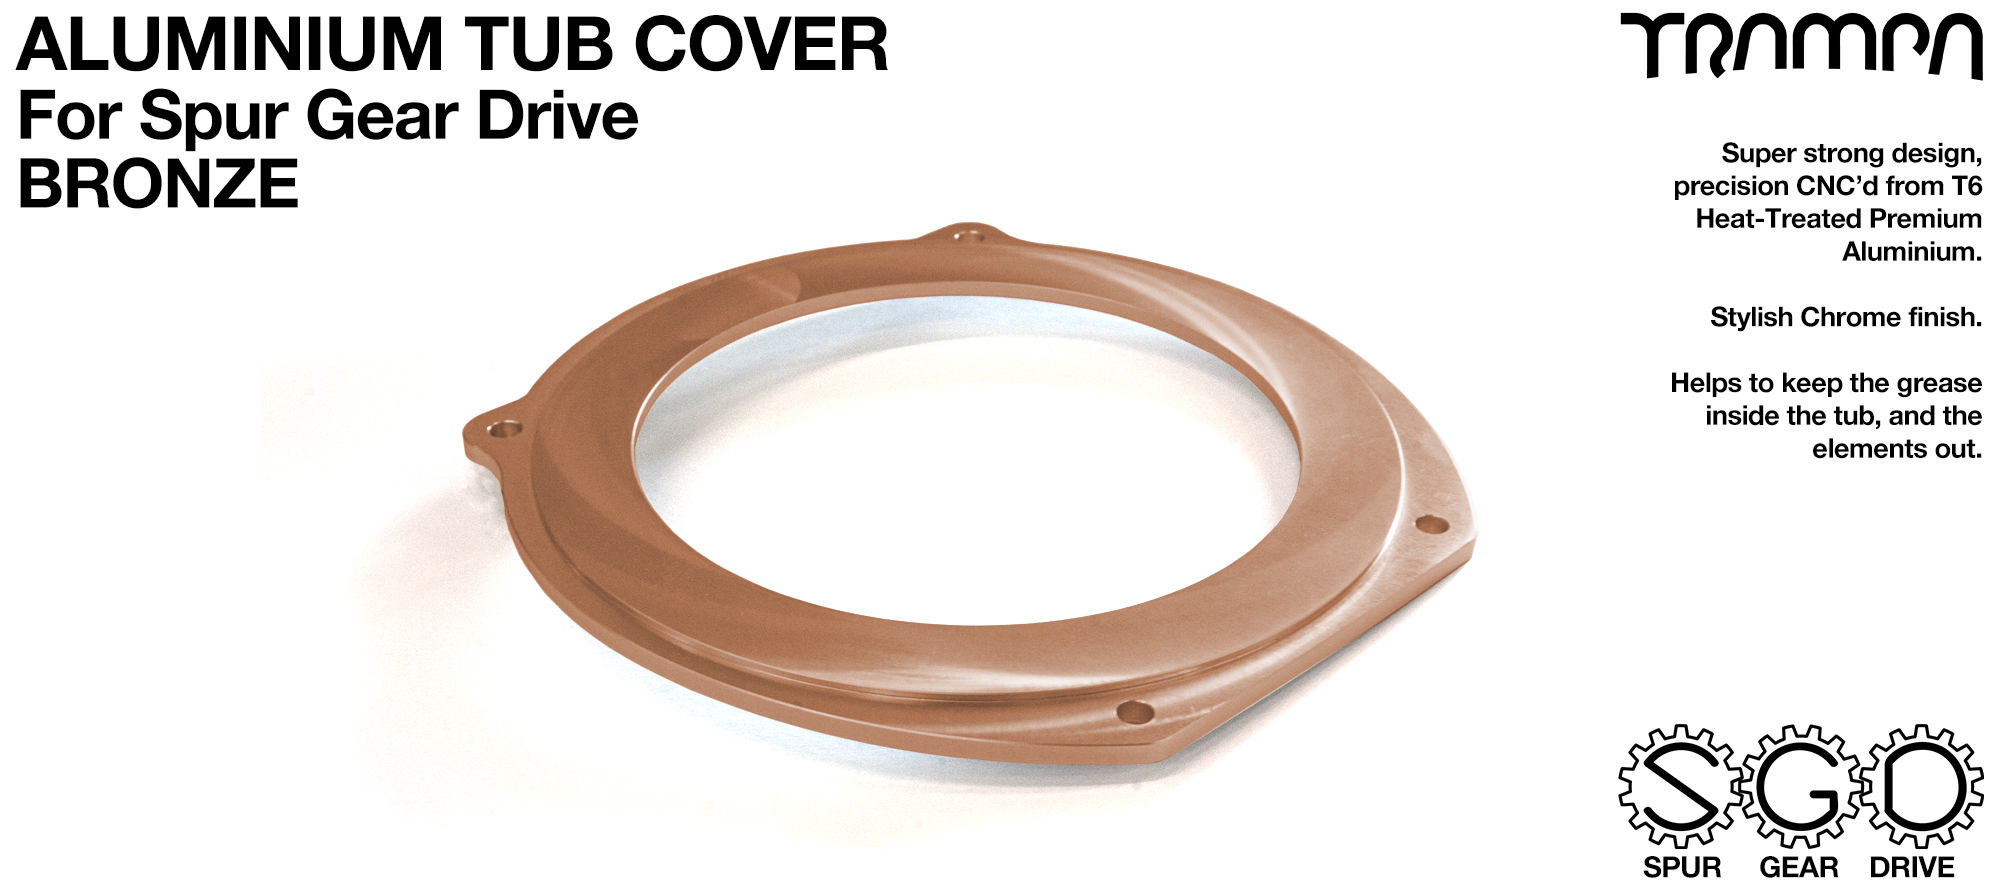 Spur Gear Drive Tub Cover - BRONZE